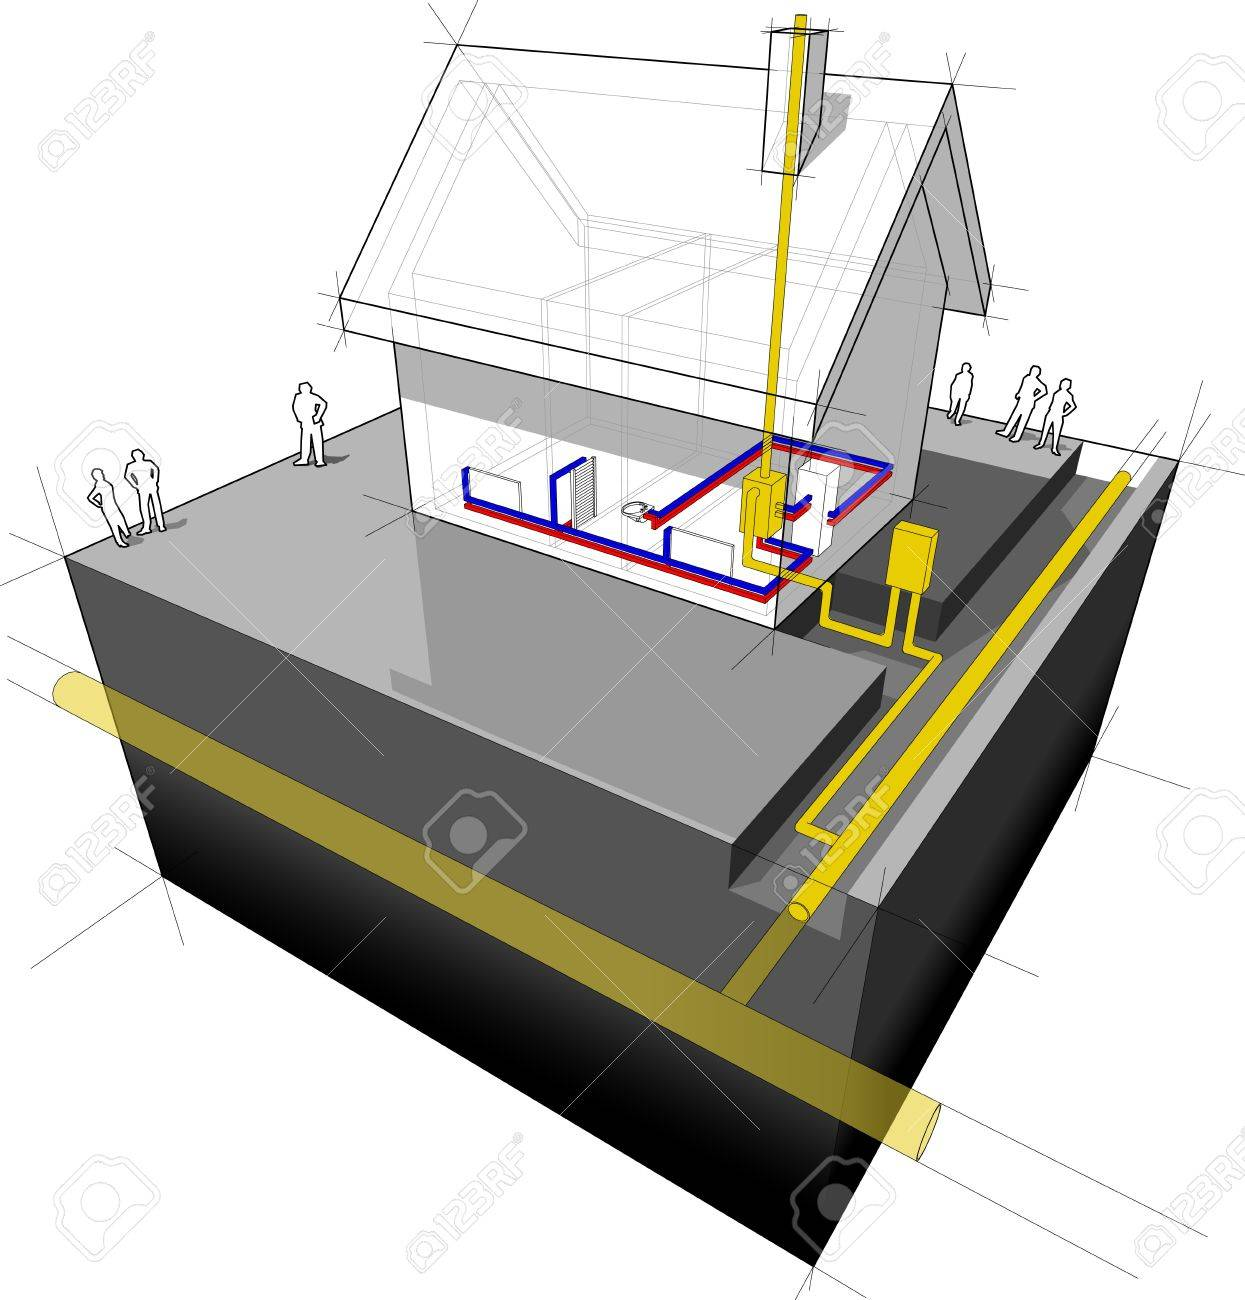 hight resolution of diagram of a detached house with traditional heating natural gas boiler radiators stock vector 21999498